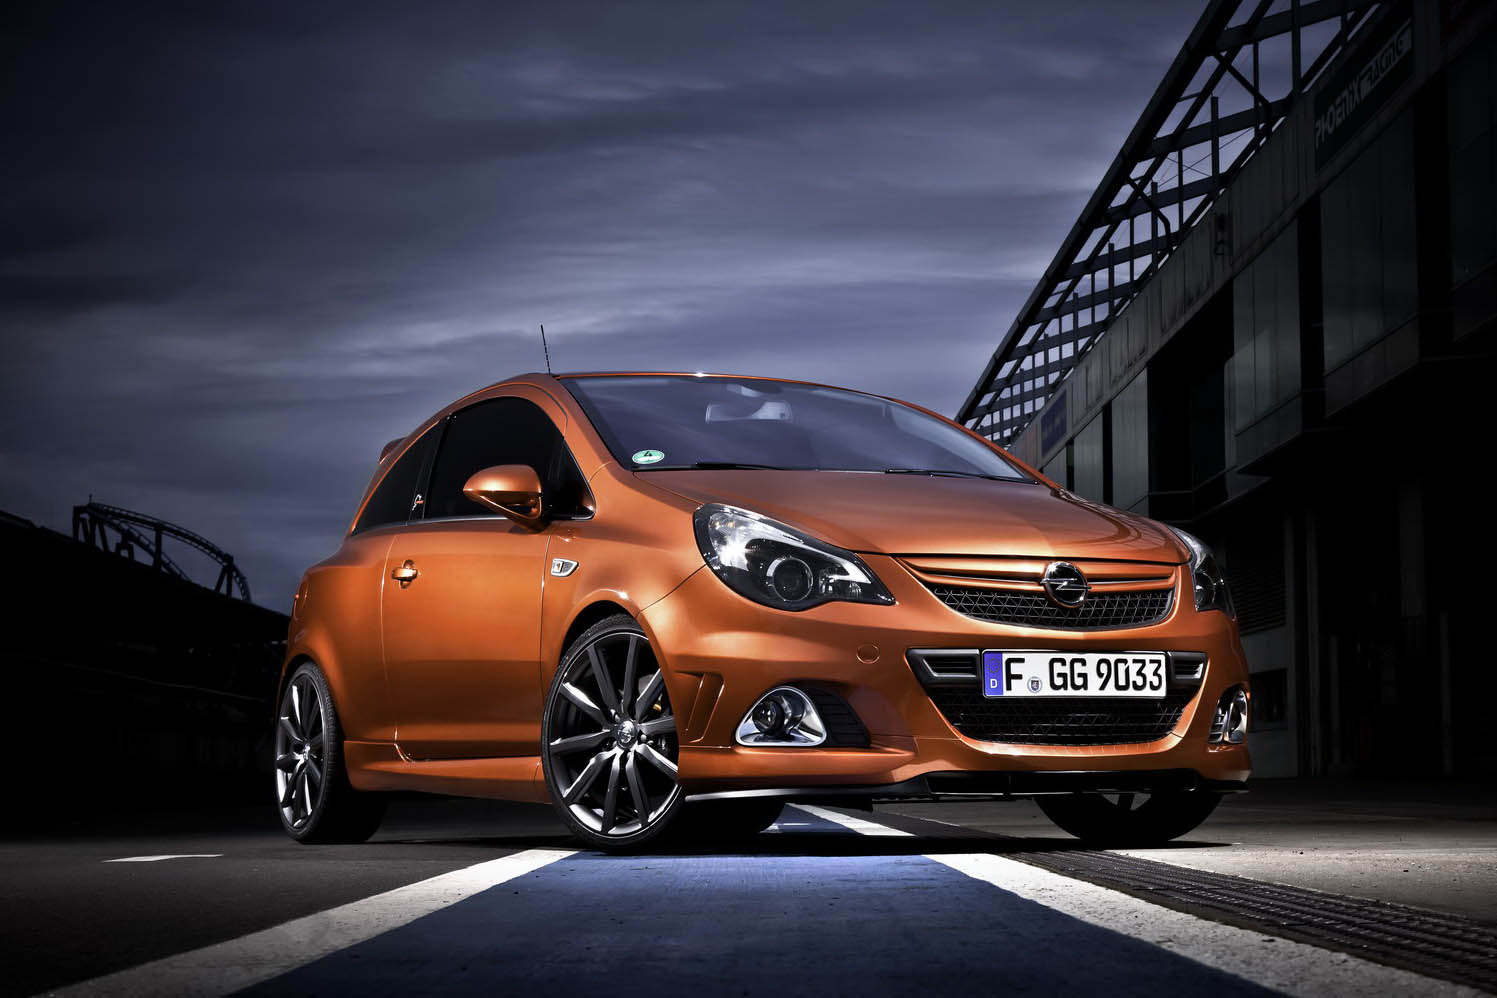 2019 Opel Corsa OPC Nurburgring Edition photo - 1